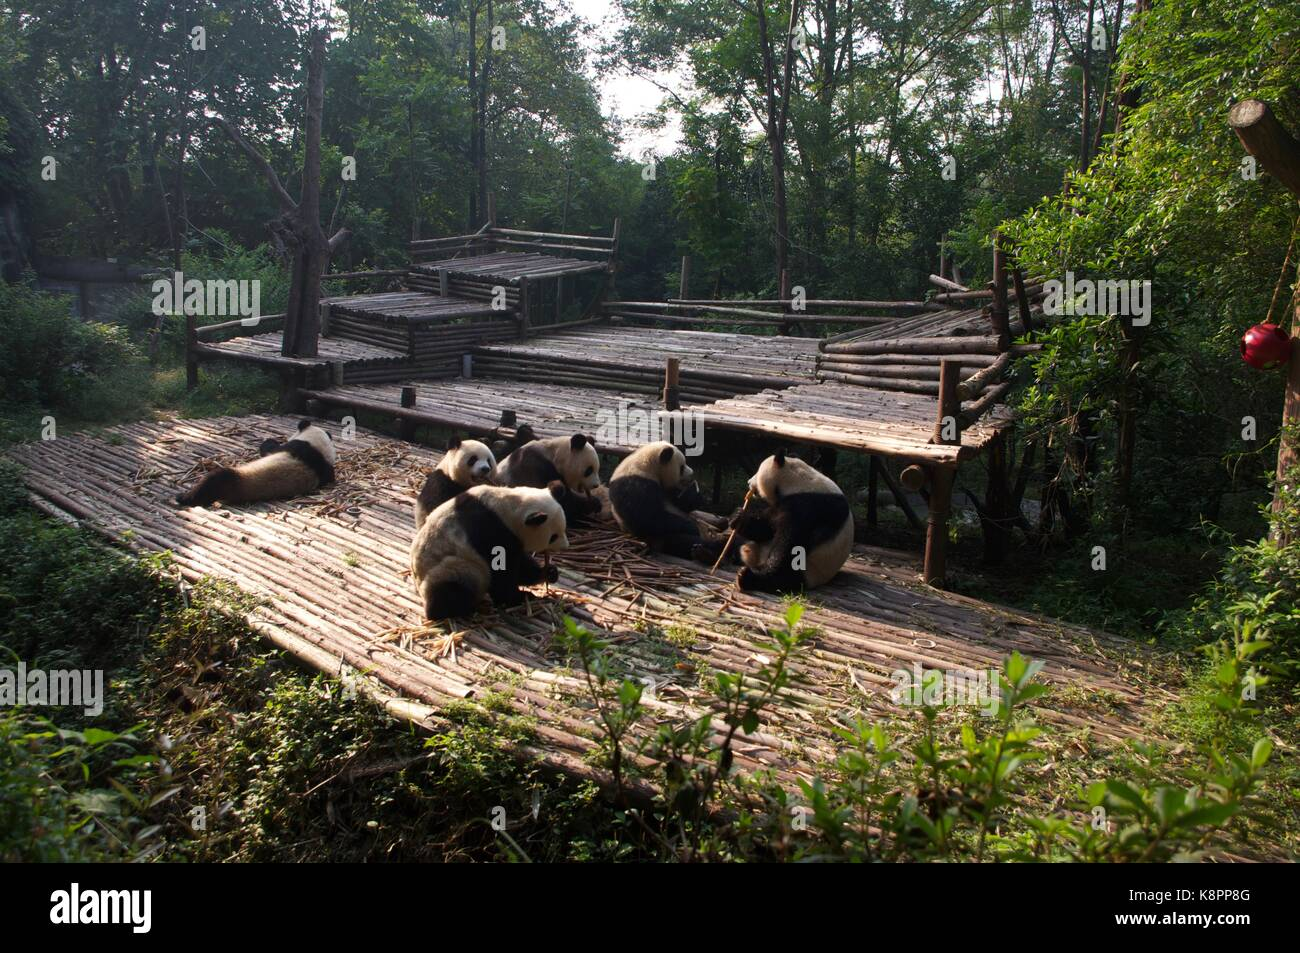 Young panda bears enjoy their bamboo breakfast at Chengdu Panda Breeding Research Center in Chengdu, Sichuan Province, - Stock Image